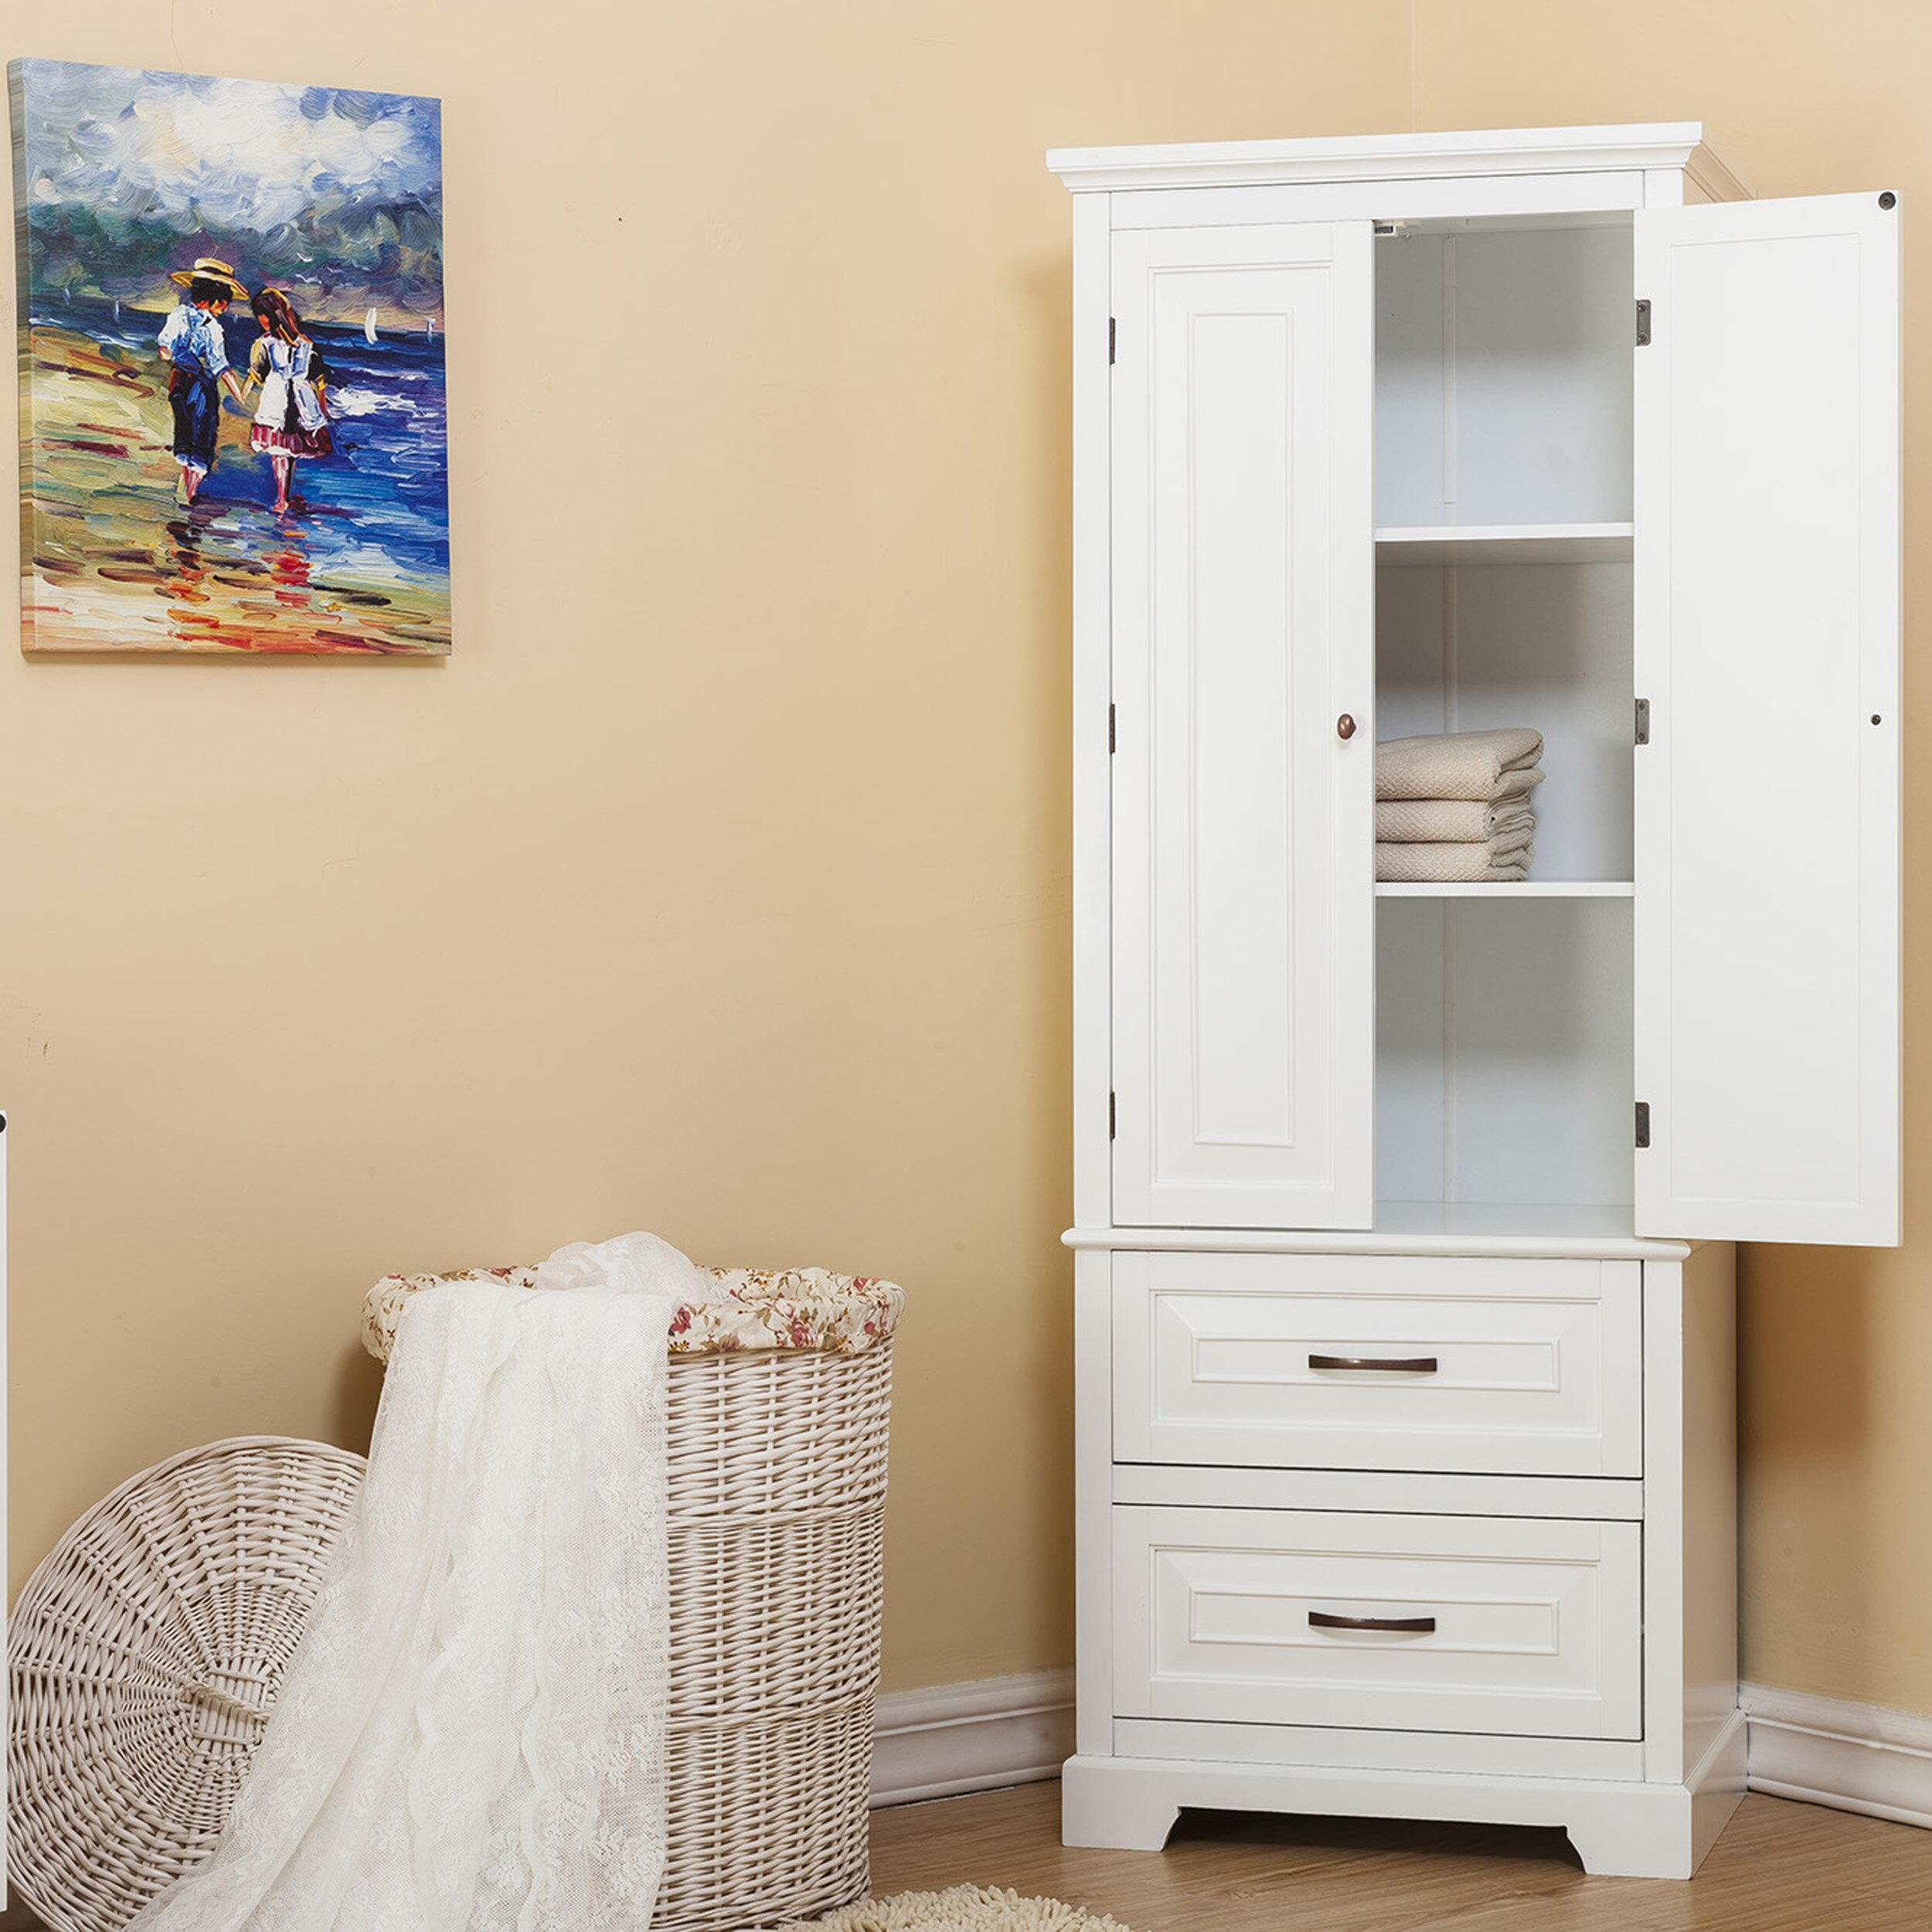 "Freestanding Kitchen Furniture Cabinet: Alcott Hill Prater 24"" X 62"" Free Standing Cabinet"